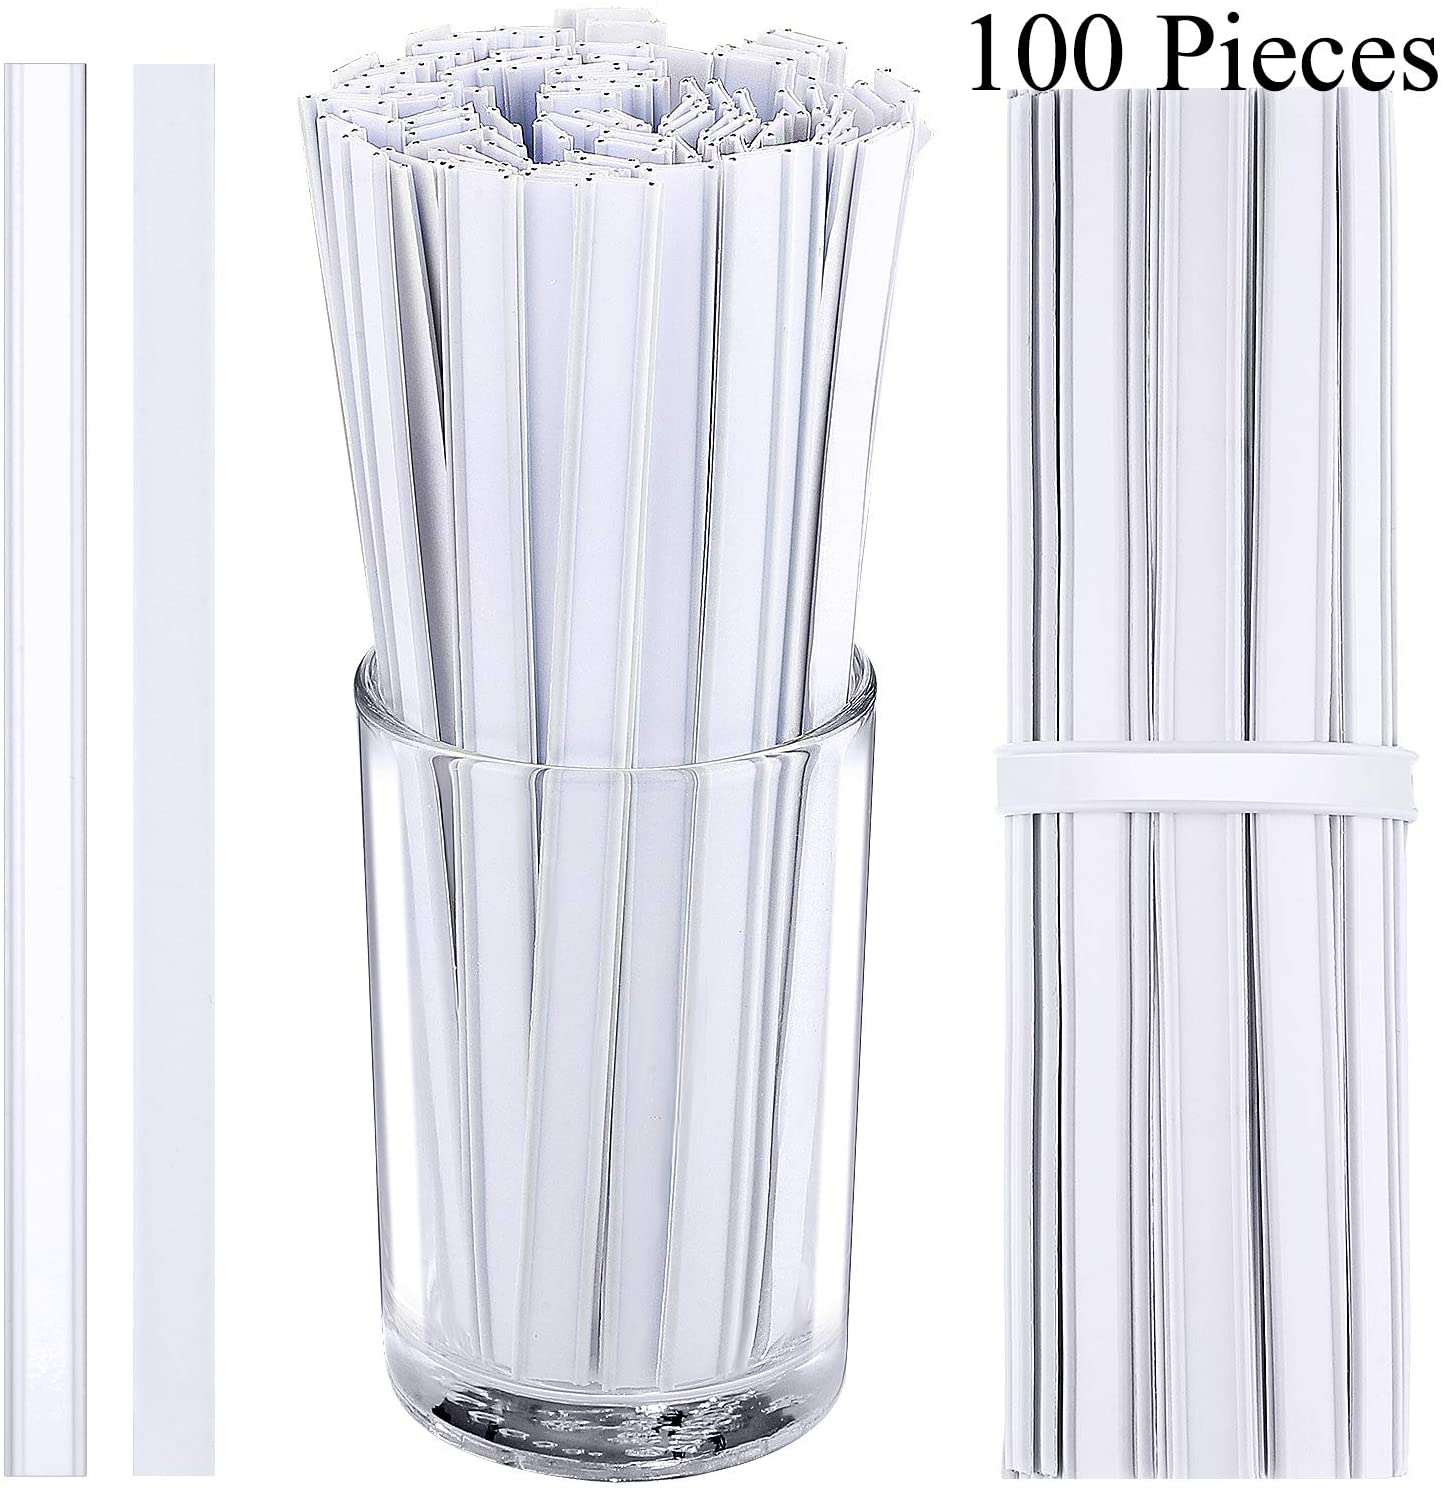 100 Pieces Double Wire Nose Bridge Clips Adhesive Wire Sealing Strips Bendable Peel and Stick Tin Ties Plastic Coffee Bag Ties Sealing Strip (White)